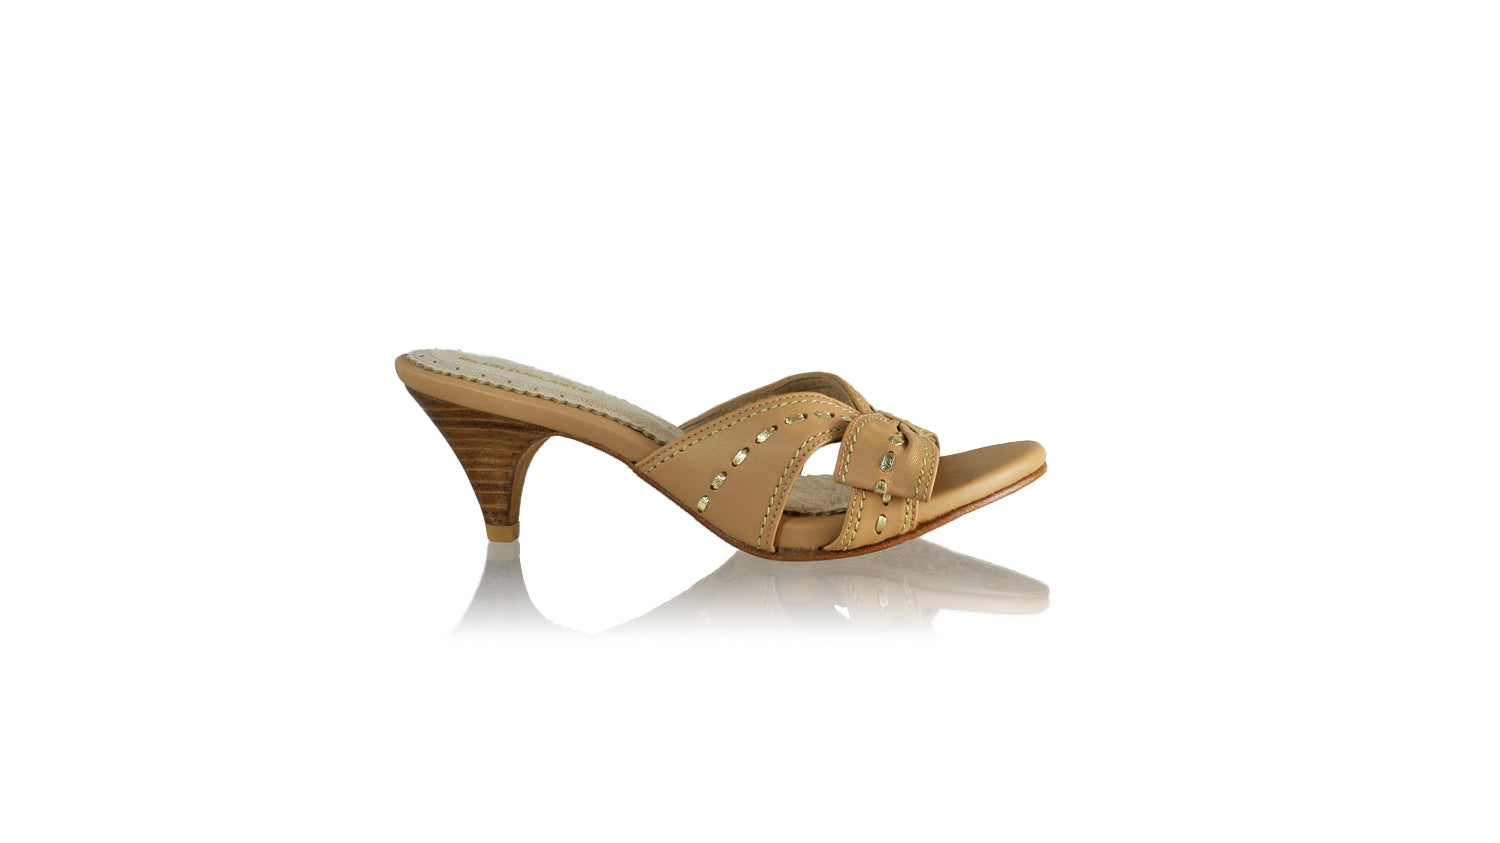 Leather-shoes-Sri 70mm SH - Nude & Gold-sandals midheel-NILUH DJELANTIK-NILUH DJELANTIK